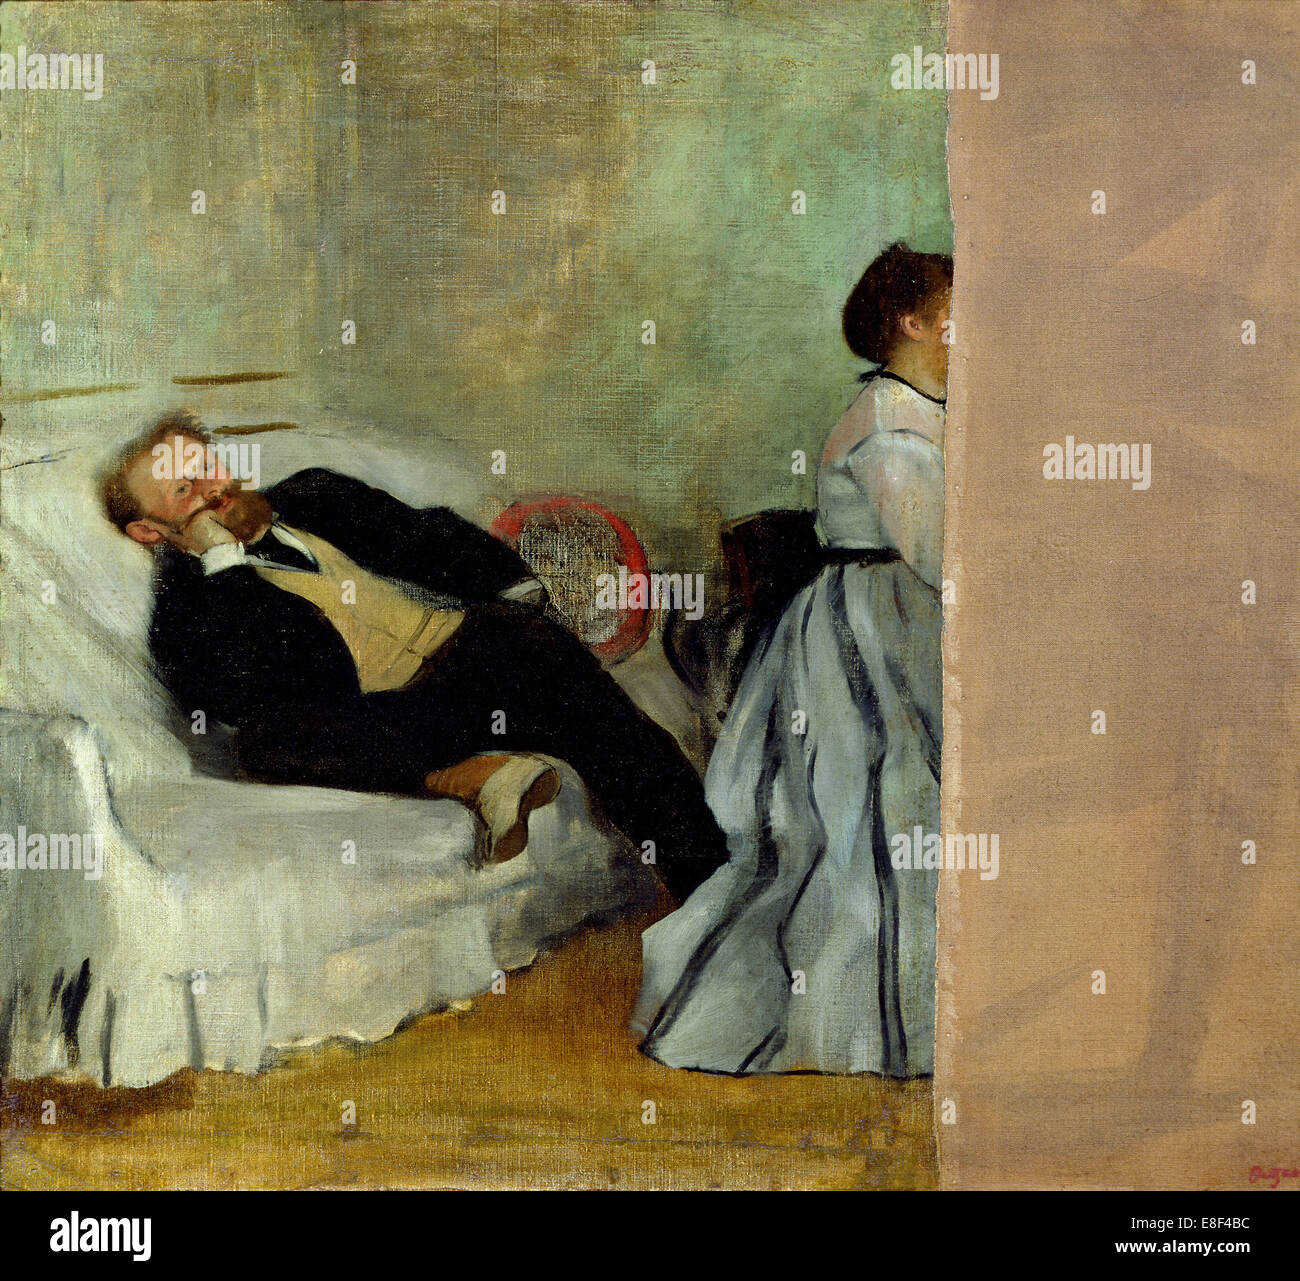 The painter Edouard Manet with his wife Suzanne. Artist: Degas, Edgar (1834-1917) - Stock Image